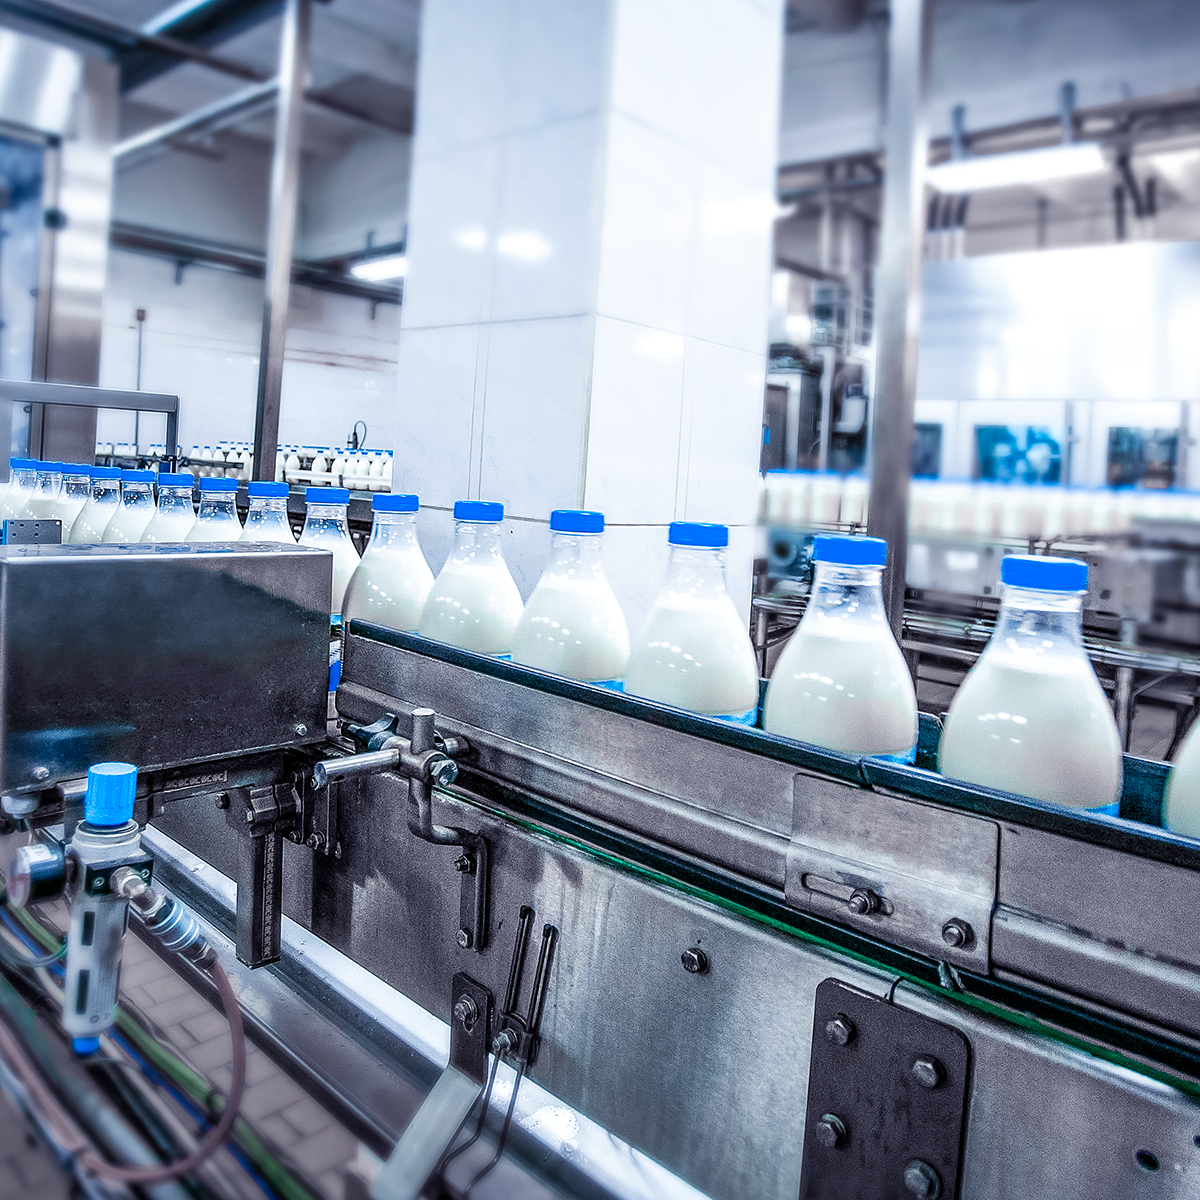 Compare and monitor the energy efficiency of production lines